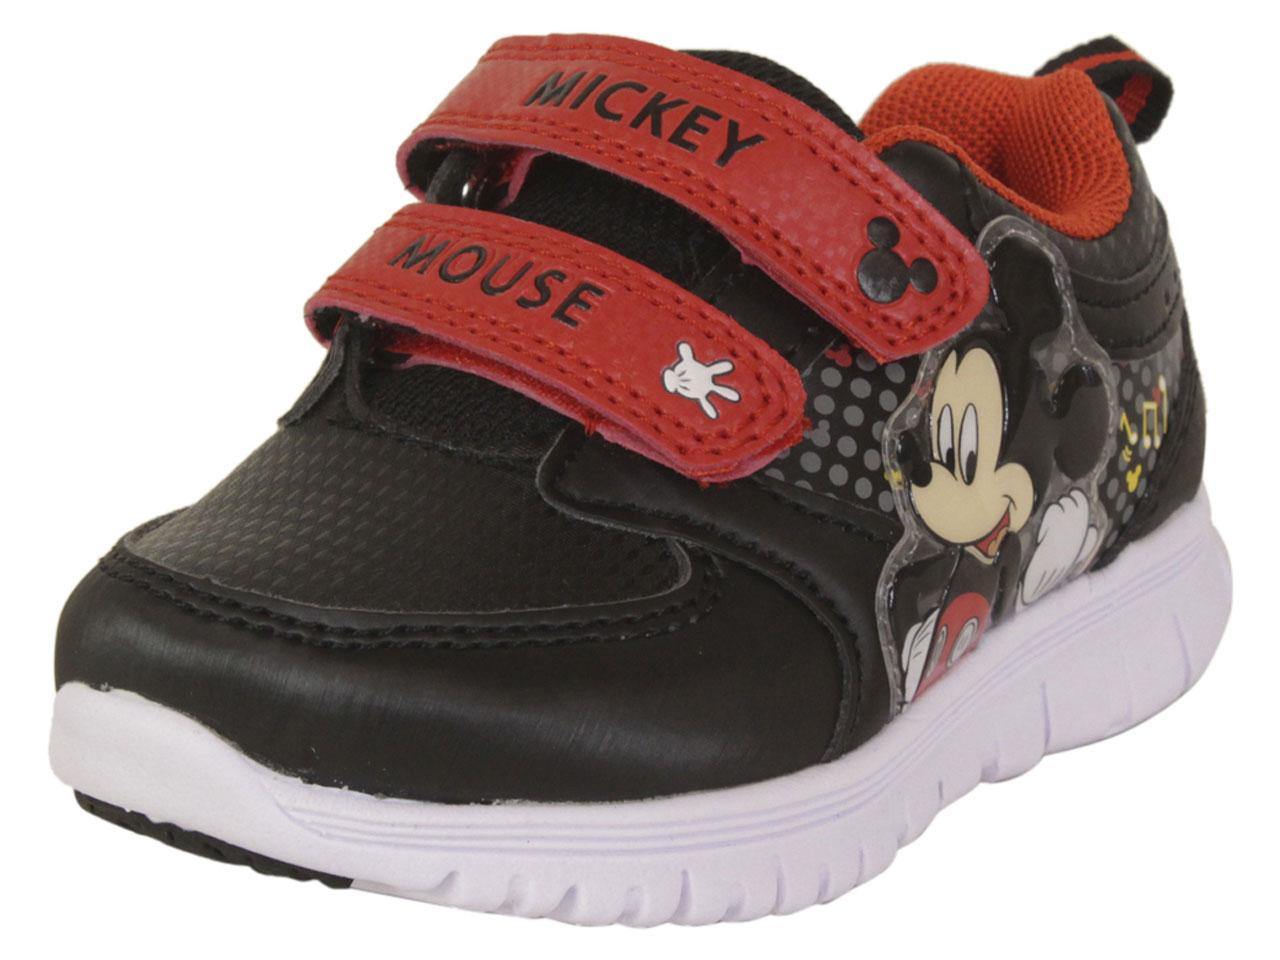 Mickey Mouse Light Up Sneakers Shoes